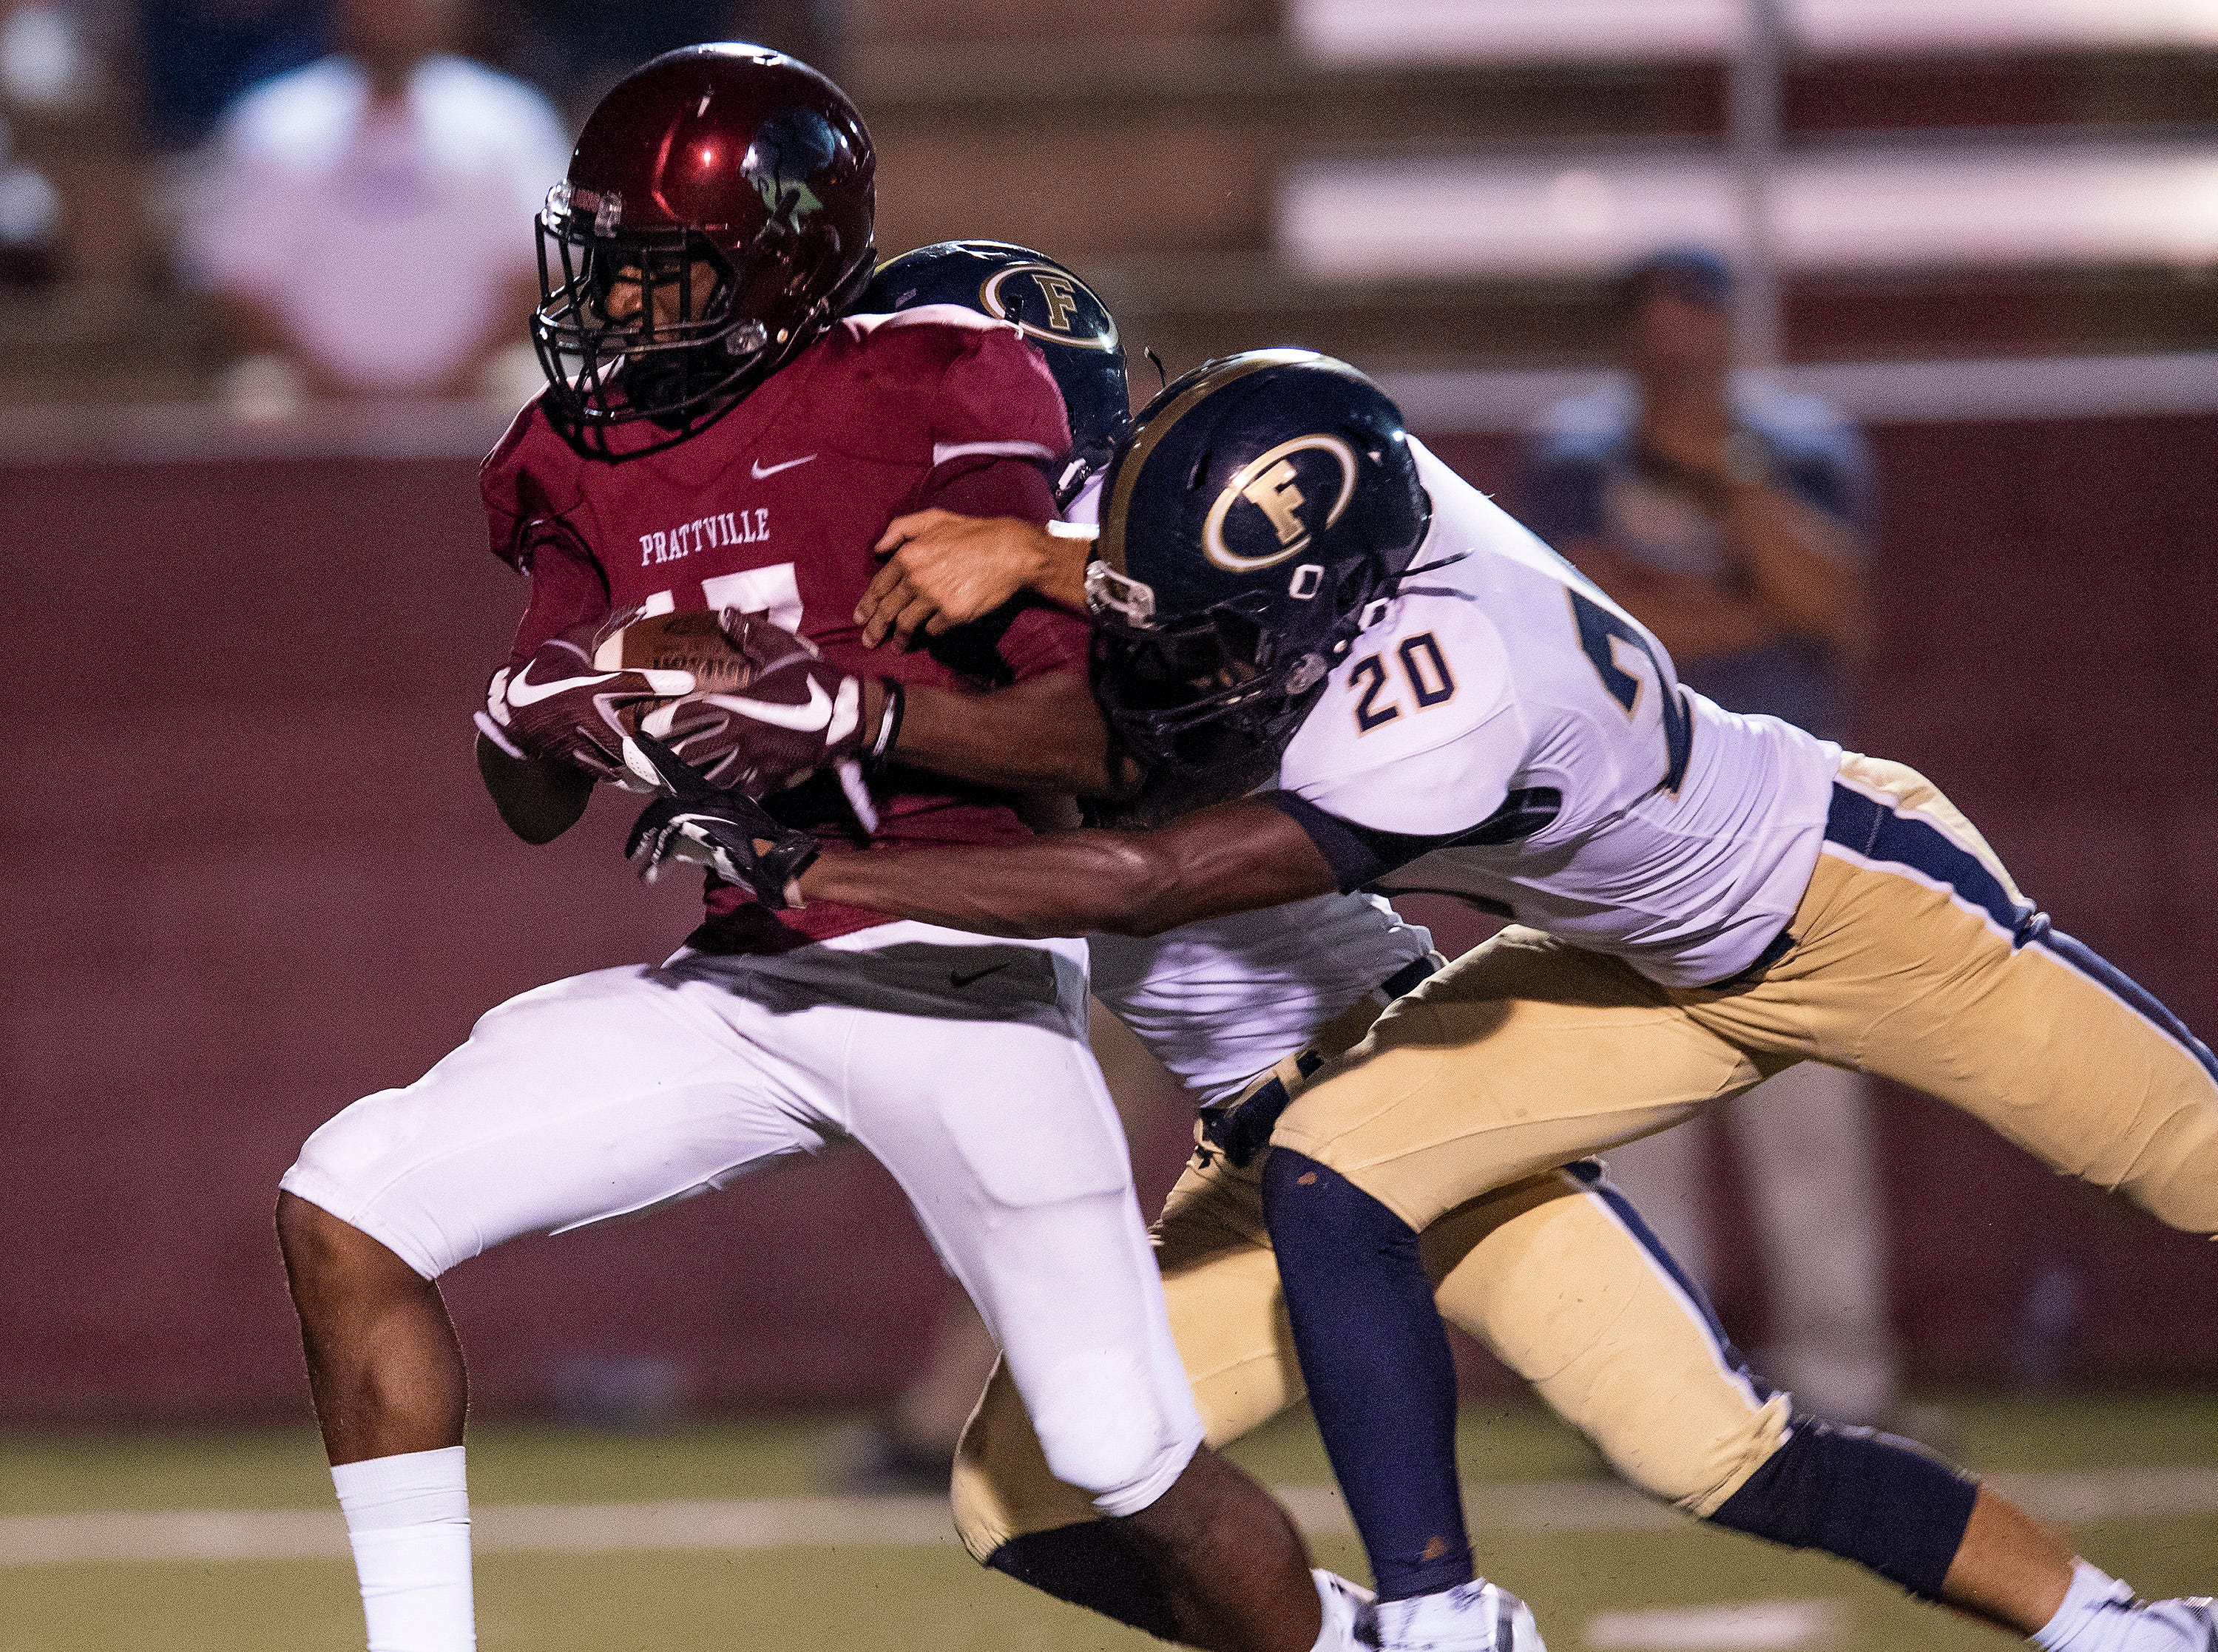 Prattville's Jalen McCary catches a log pass against Foley at Stanley-Jensen Stadium in Prattville, Ala., on Friday August 24, 2018.